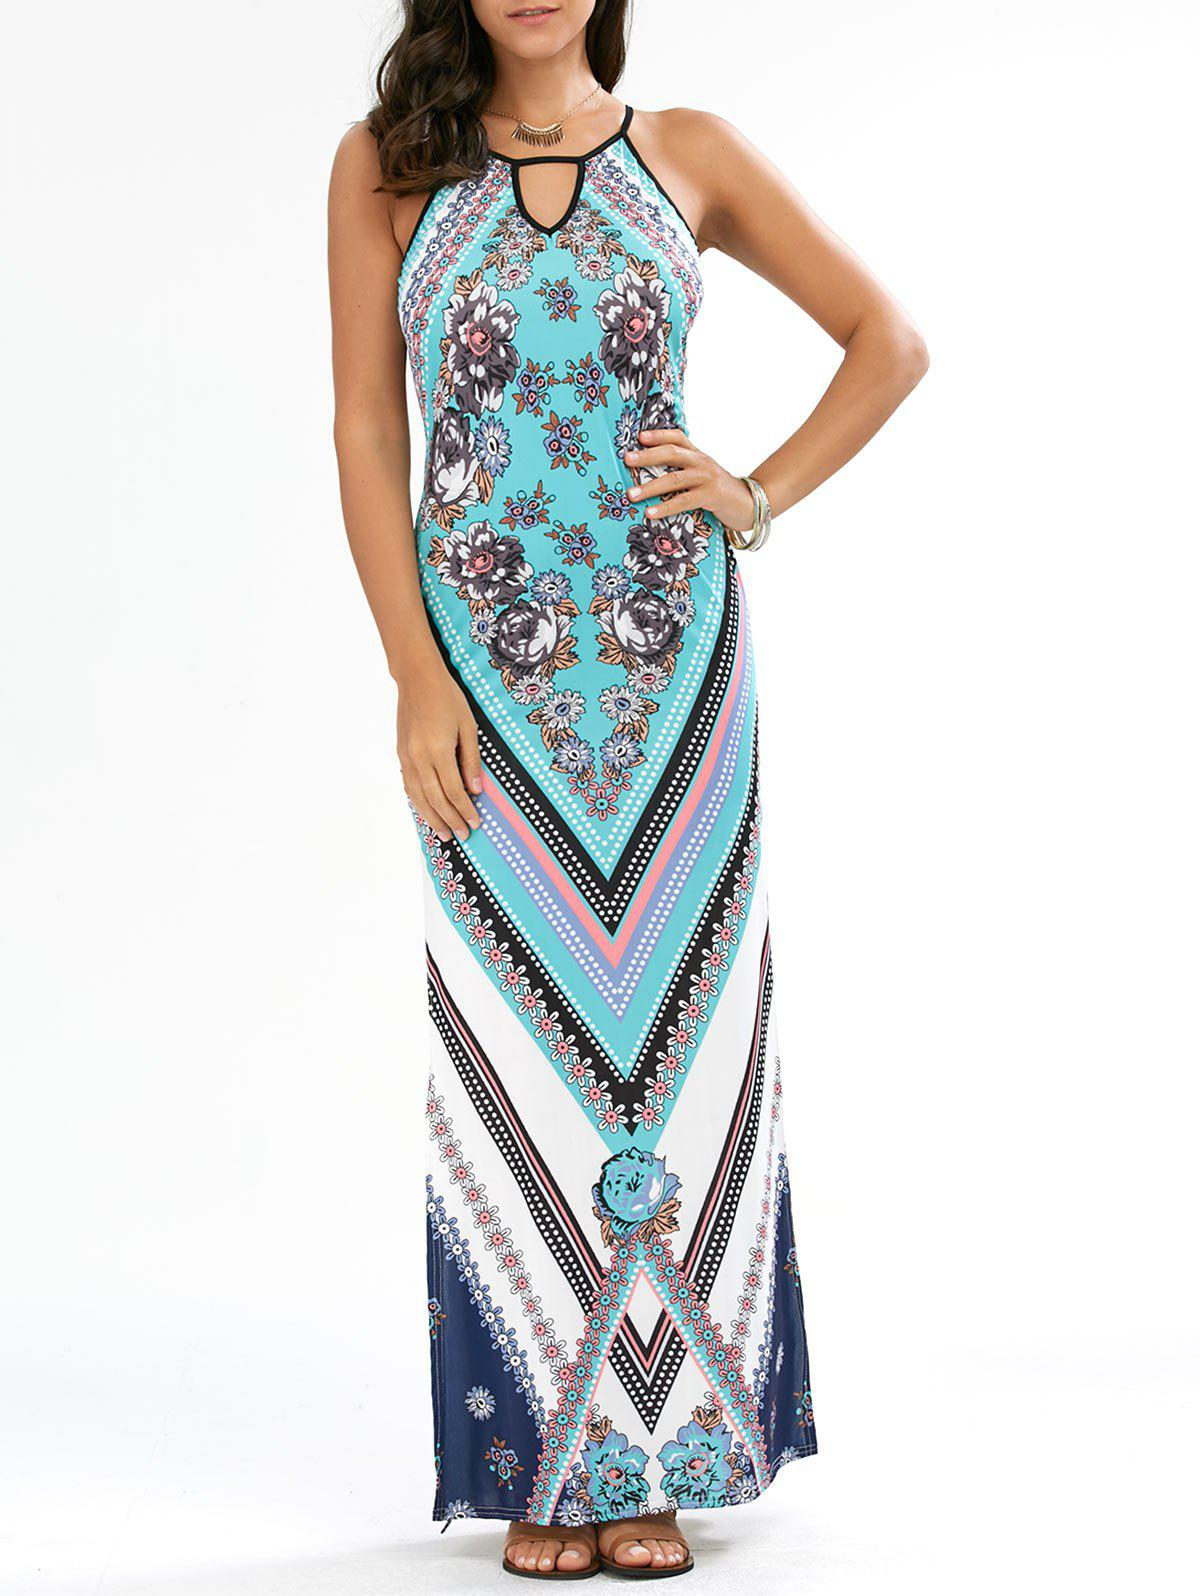 Keyhole Neck Floral Chevron Tall Maxi DressWOMEN<br><br>Size: L; Color: CYAN; Style: Bohemian; Material: Polyester; Silhouette: Sheath; Dresses Length: Floor-Length; Neckline: Keyhole Neck; Sleeve Length: Sleeveless; Waist: Natural; Pattern Type: Floral; Placement Print: Yes; With Belt: No; Season: Summer; Weight: 0.2800kg; Package Contents: 1 x Dress;